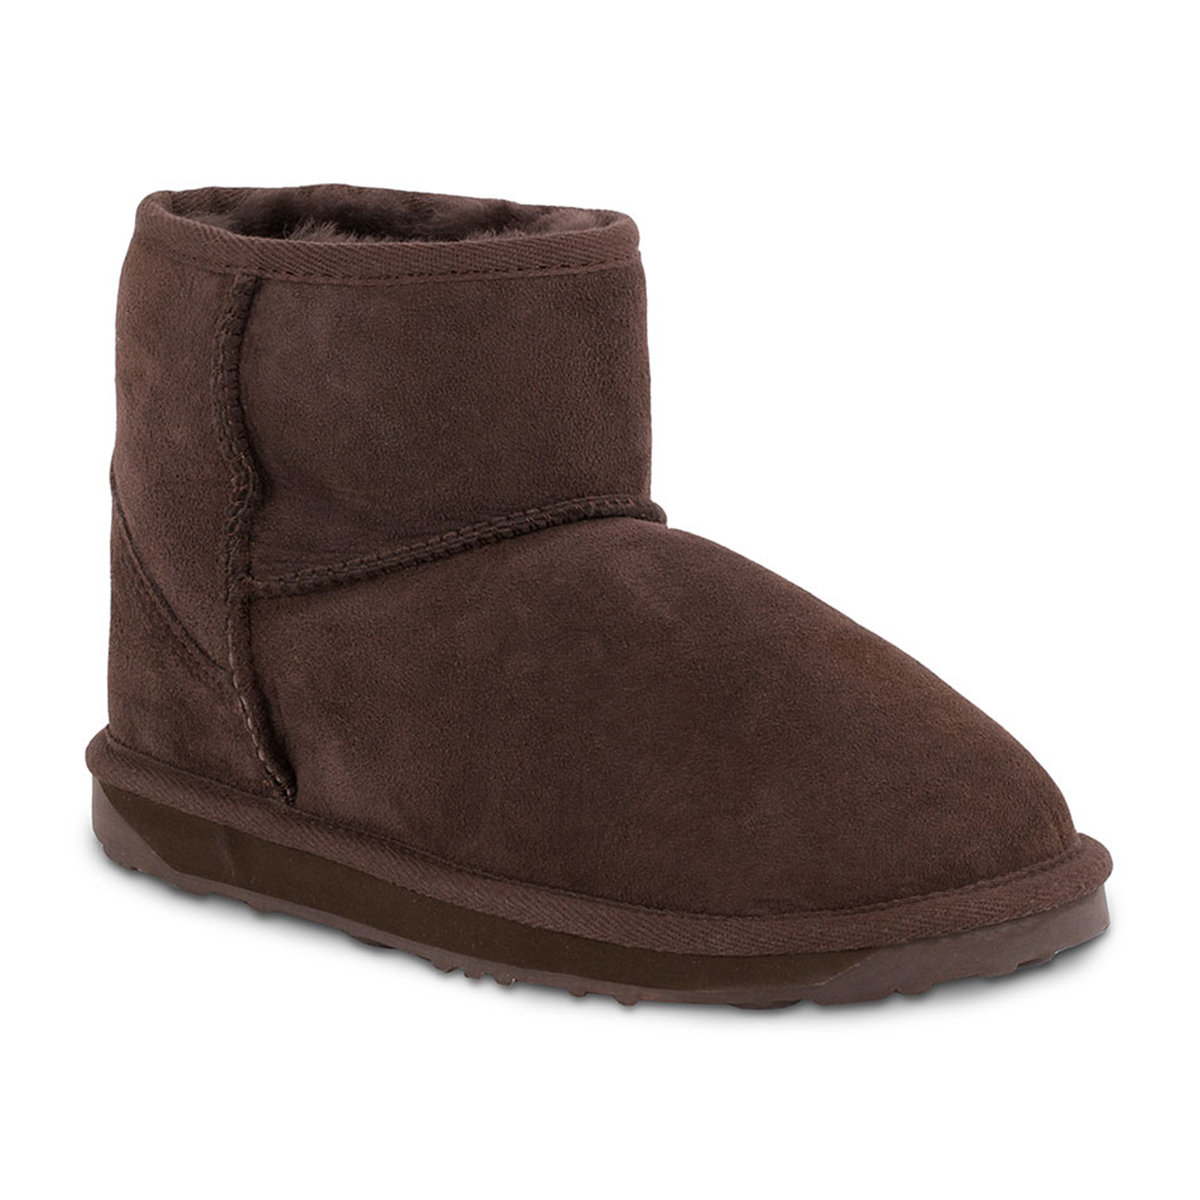 billabong ugg boots